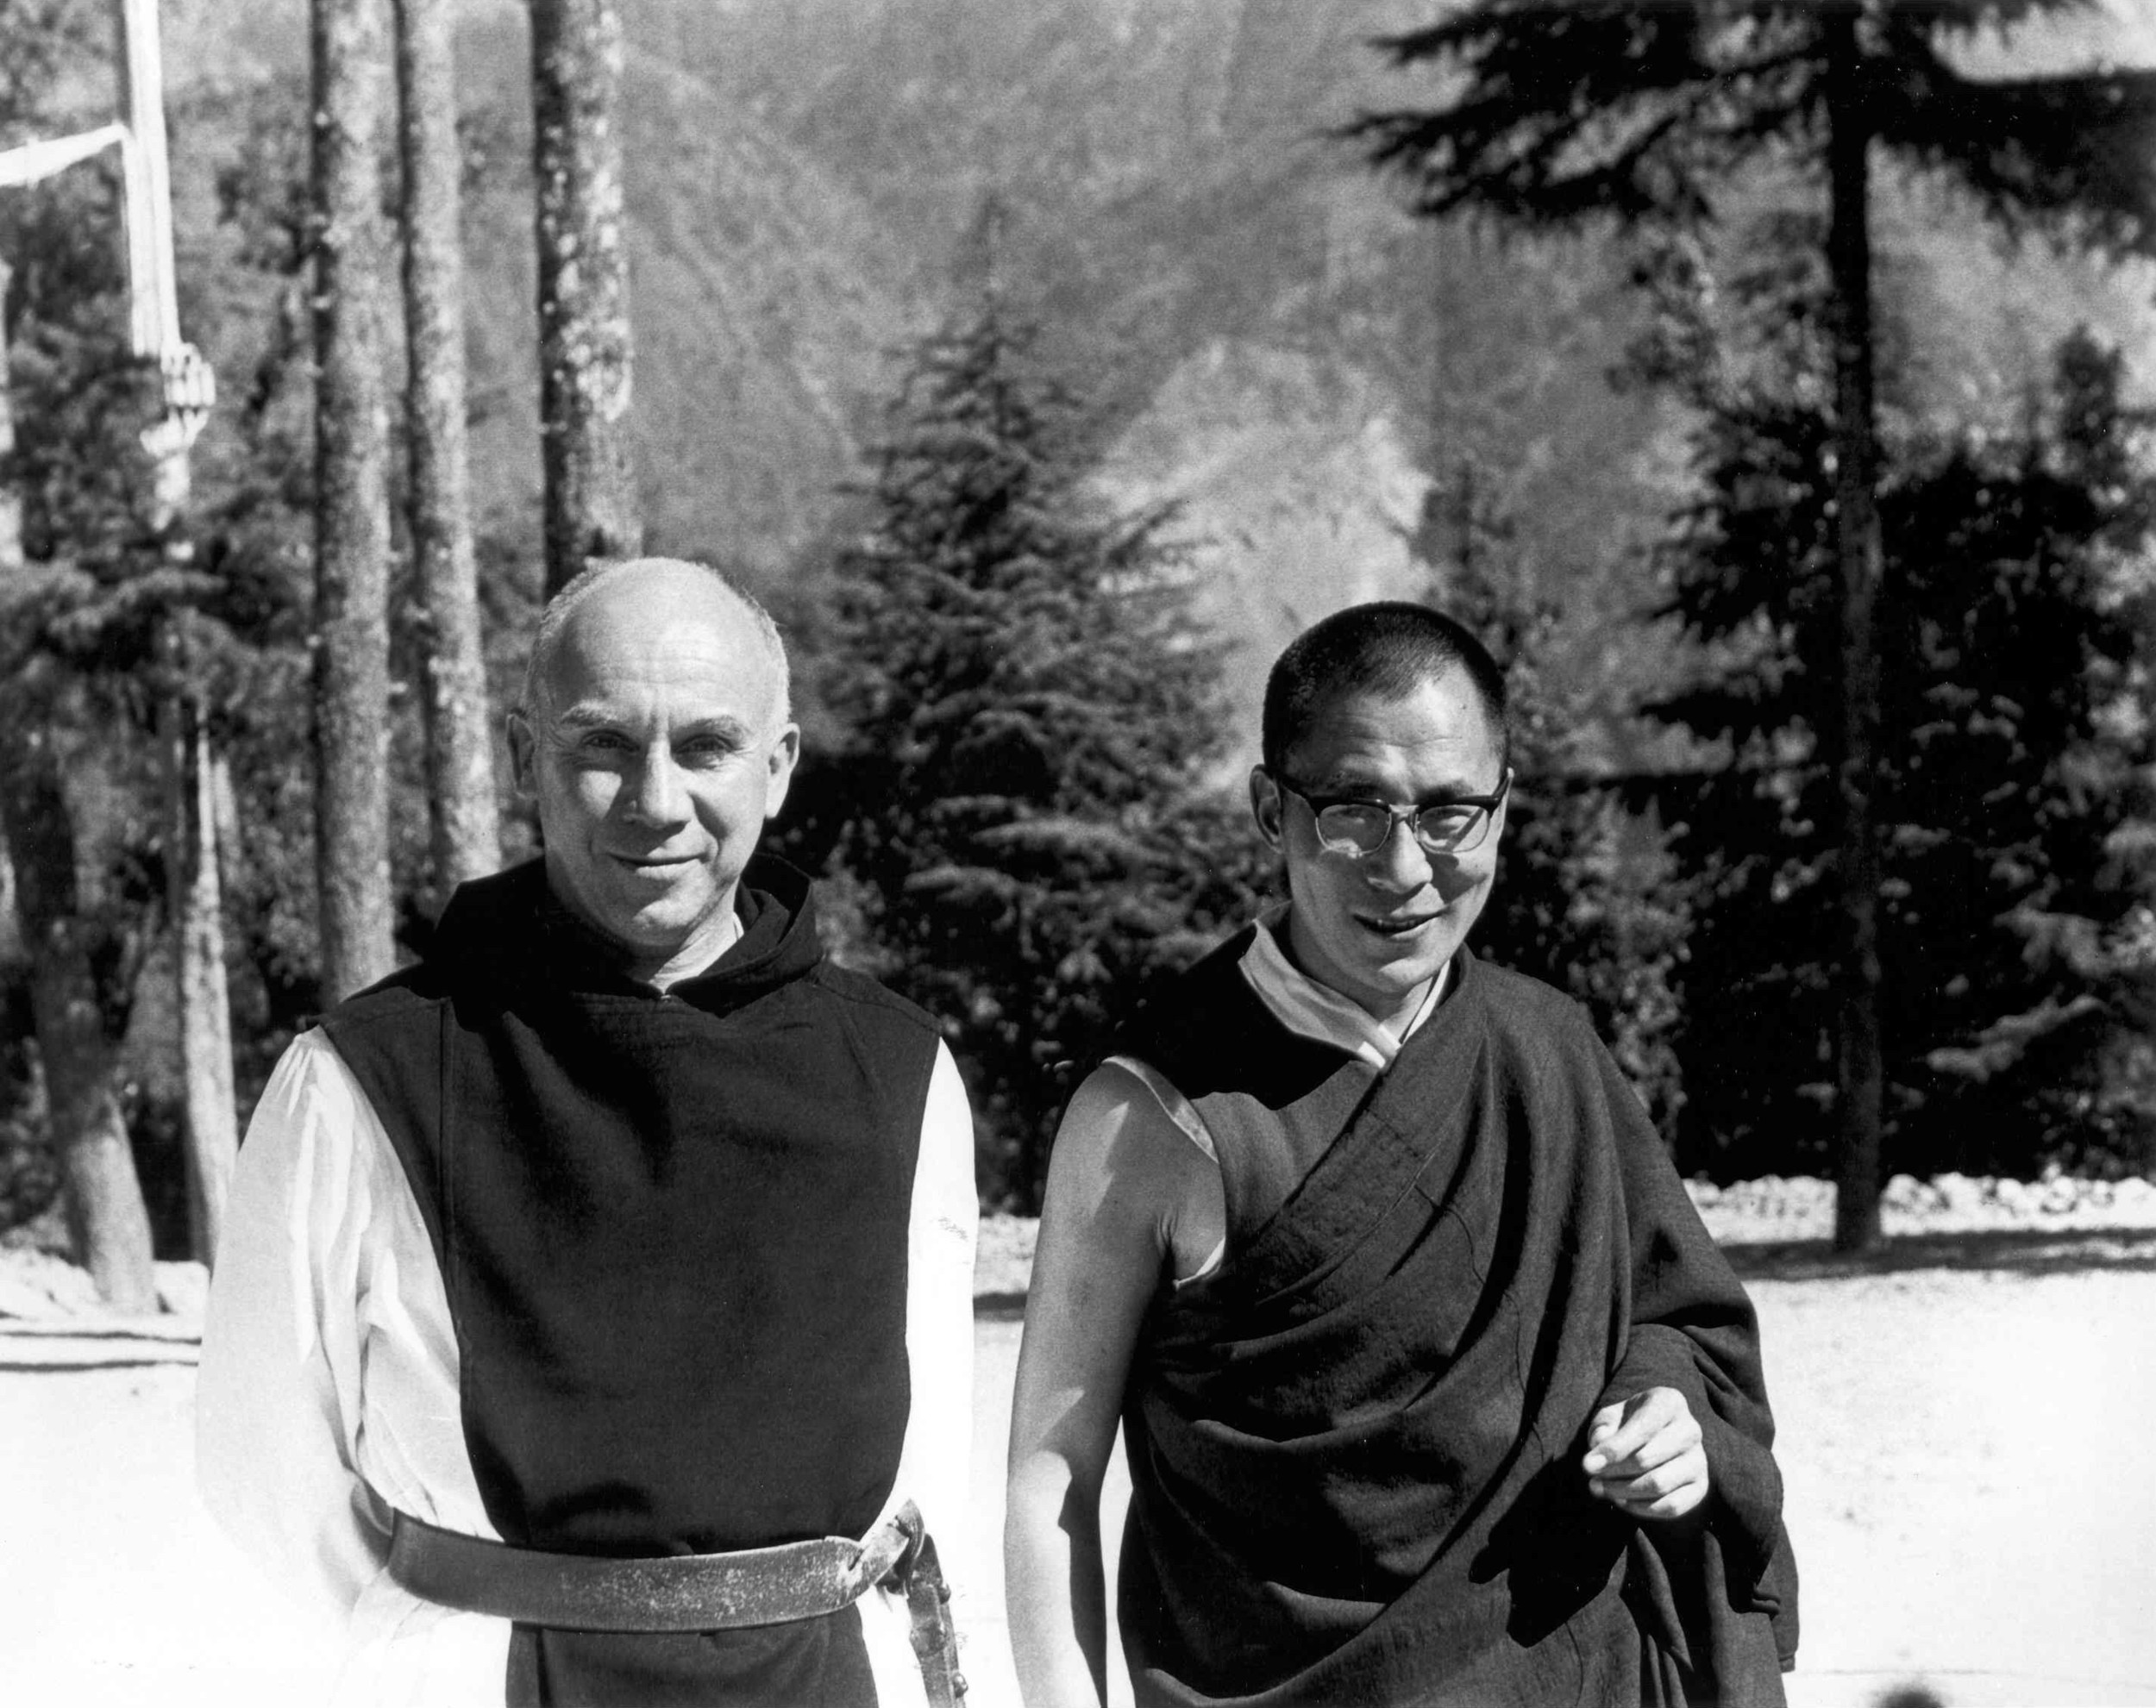 Merton & Dalai Lama. Used with Permission of the Merton Legacy Trust and the Thomas Merton Center.